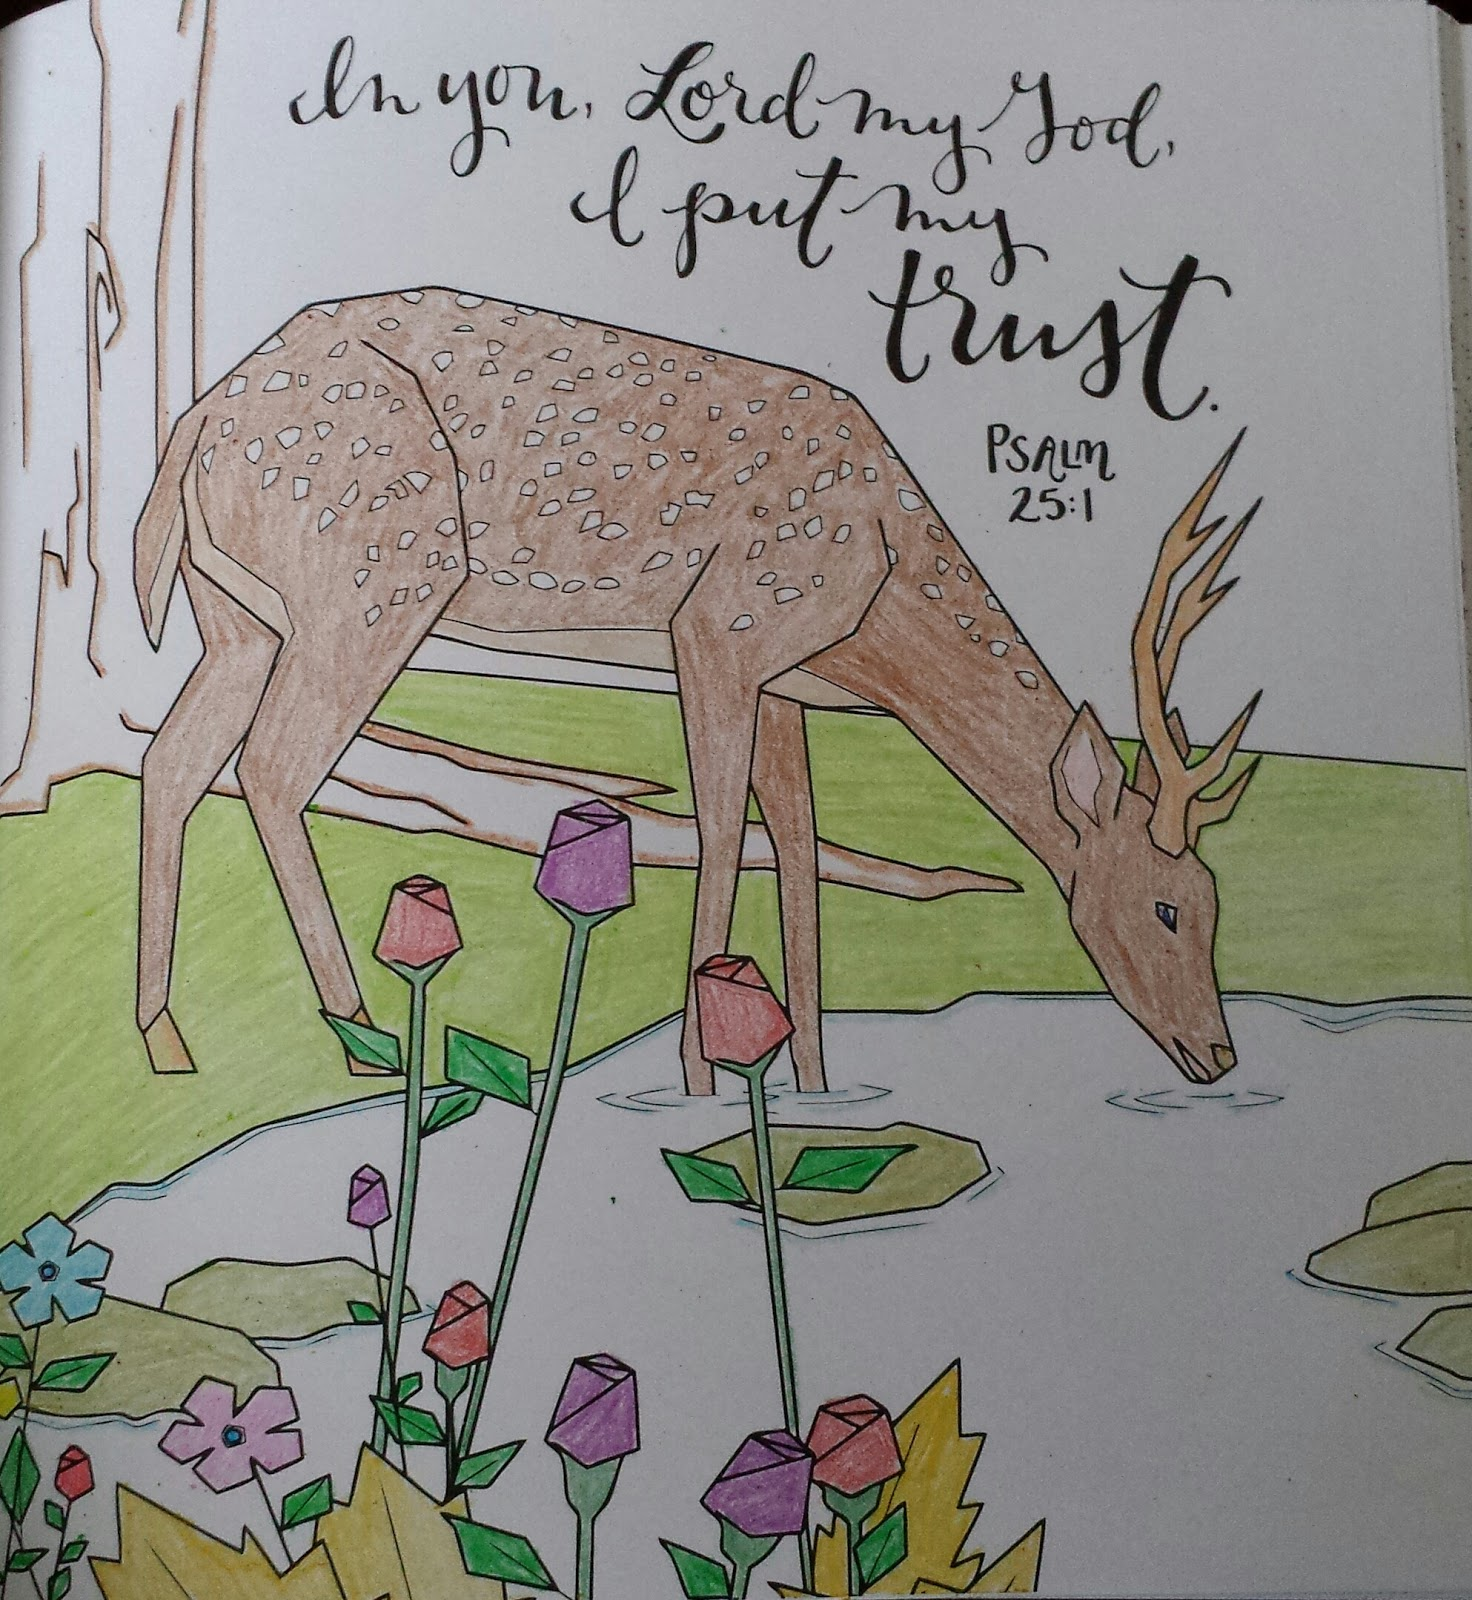 Coloring books for kids at walmart -  A Saying Or Song Lyrics Incorporated Into The Design The Intent Is Truly To Draw The User Into Worship I Really Enjoy Coloring While I M Listening